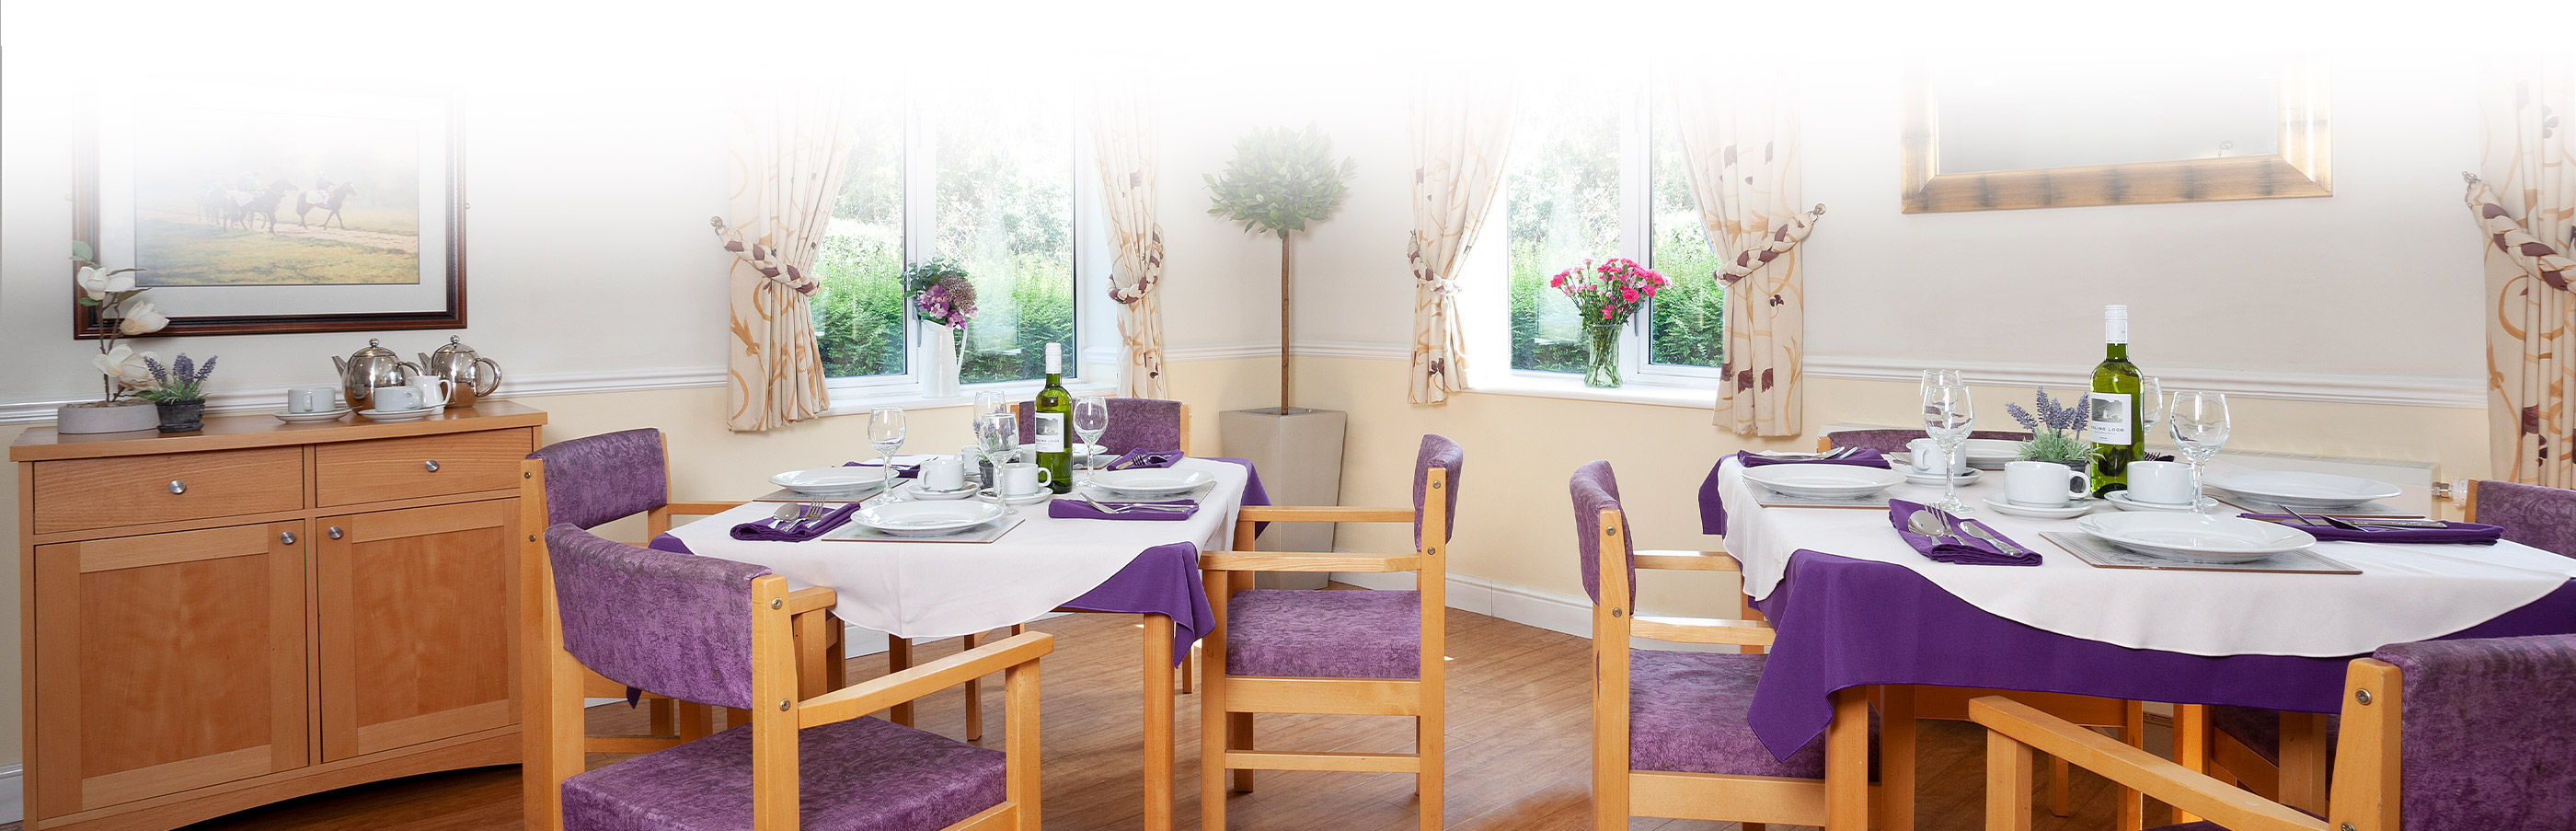 Living space with purple chairs at priory court care home epsom